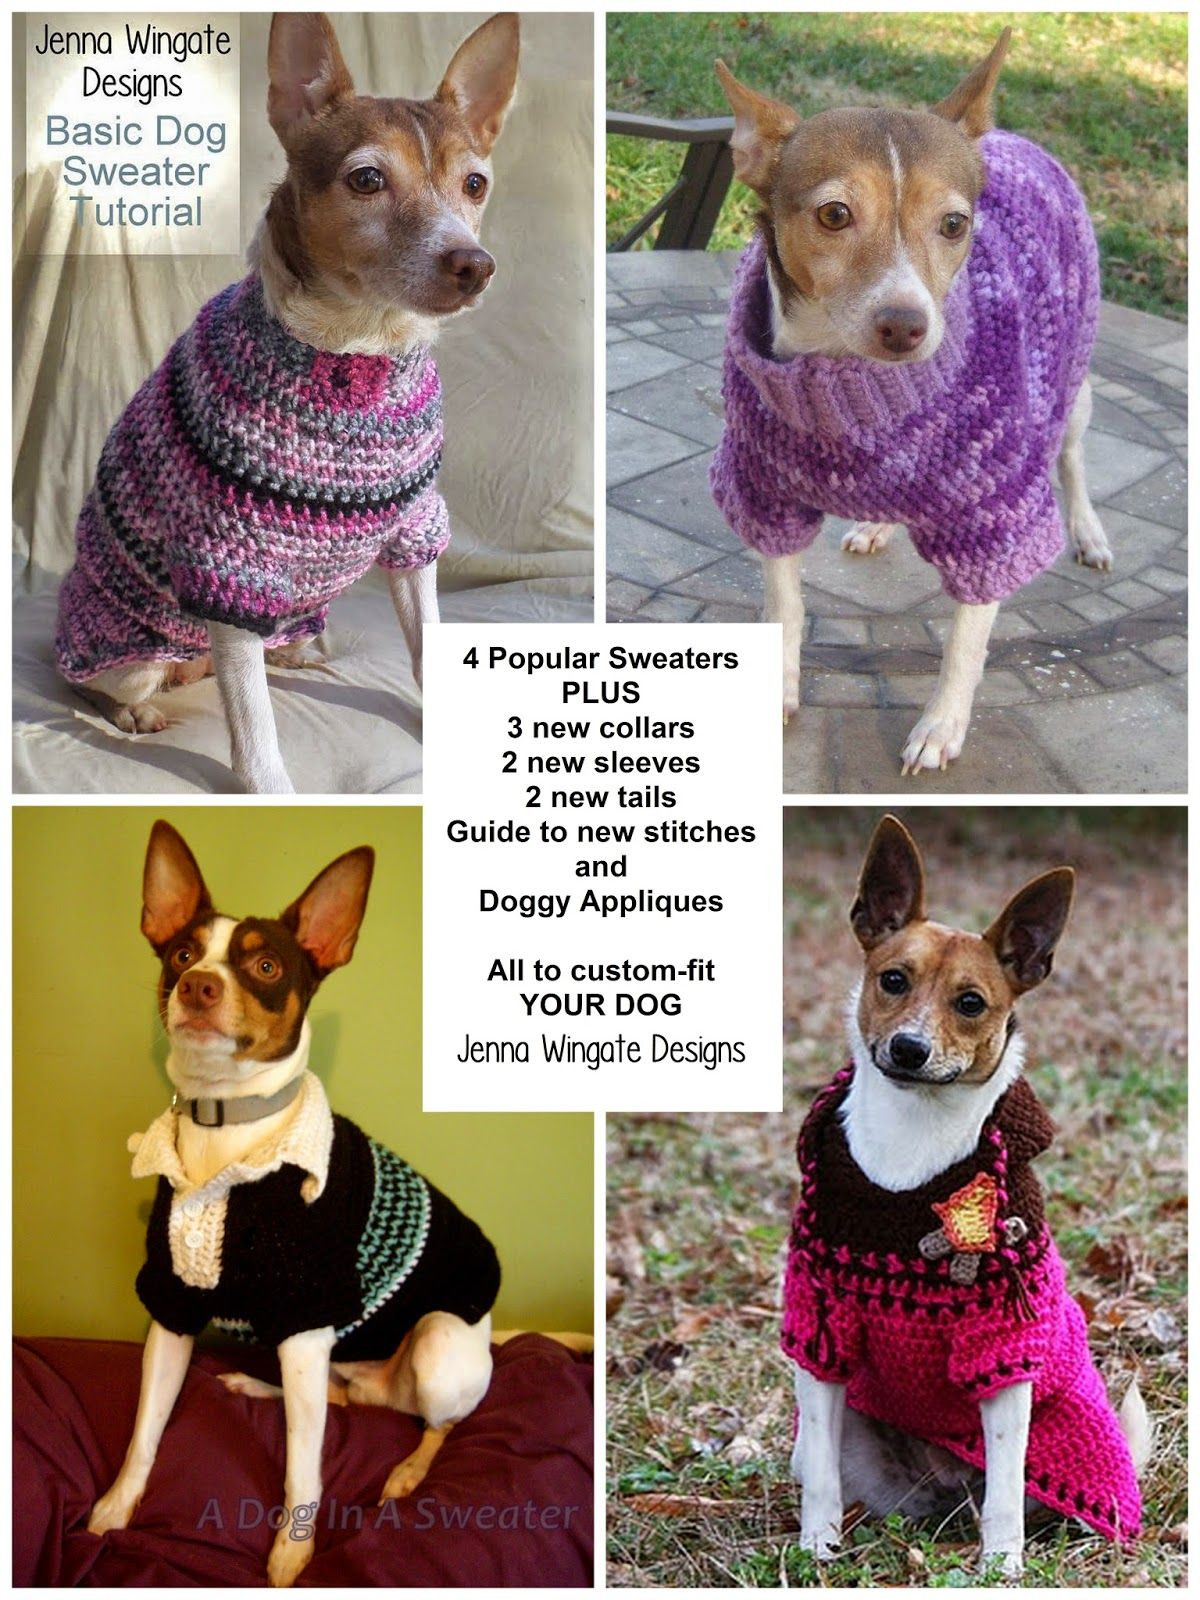 Jenna Wingate Designs: Custom-Fit Dog Sweater Ebook | doggies ...